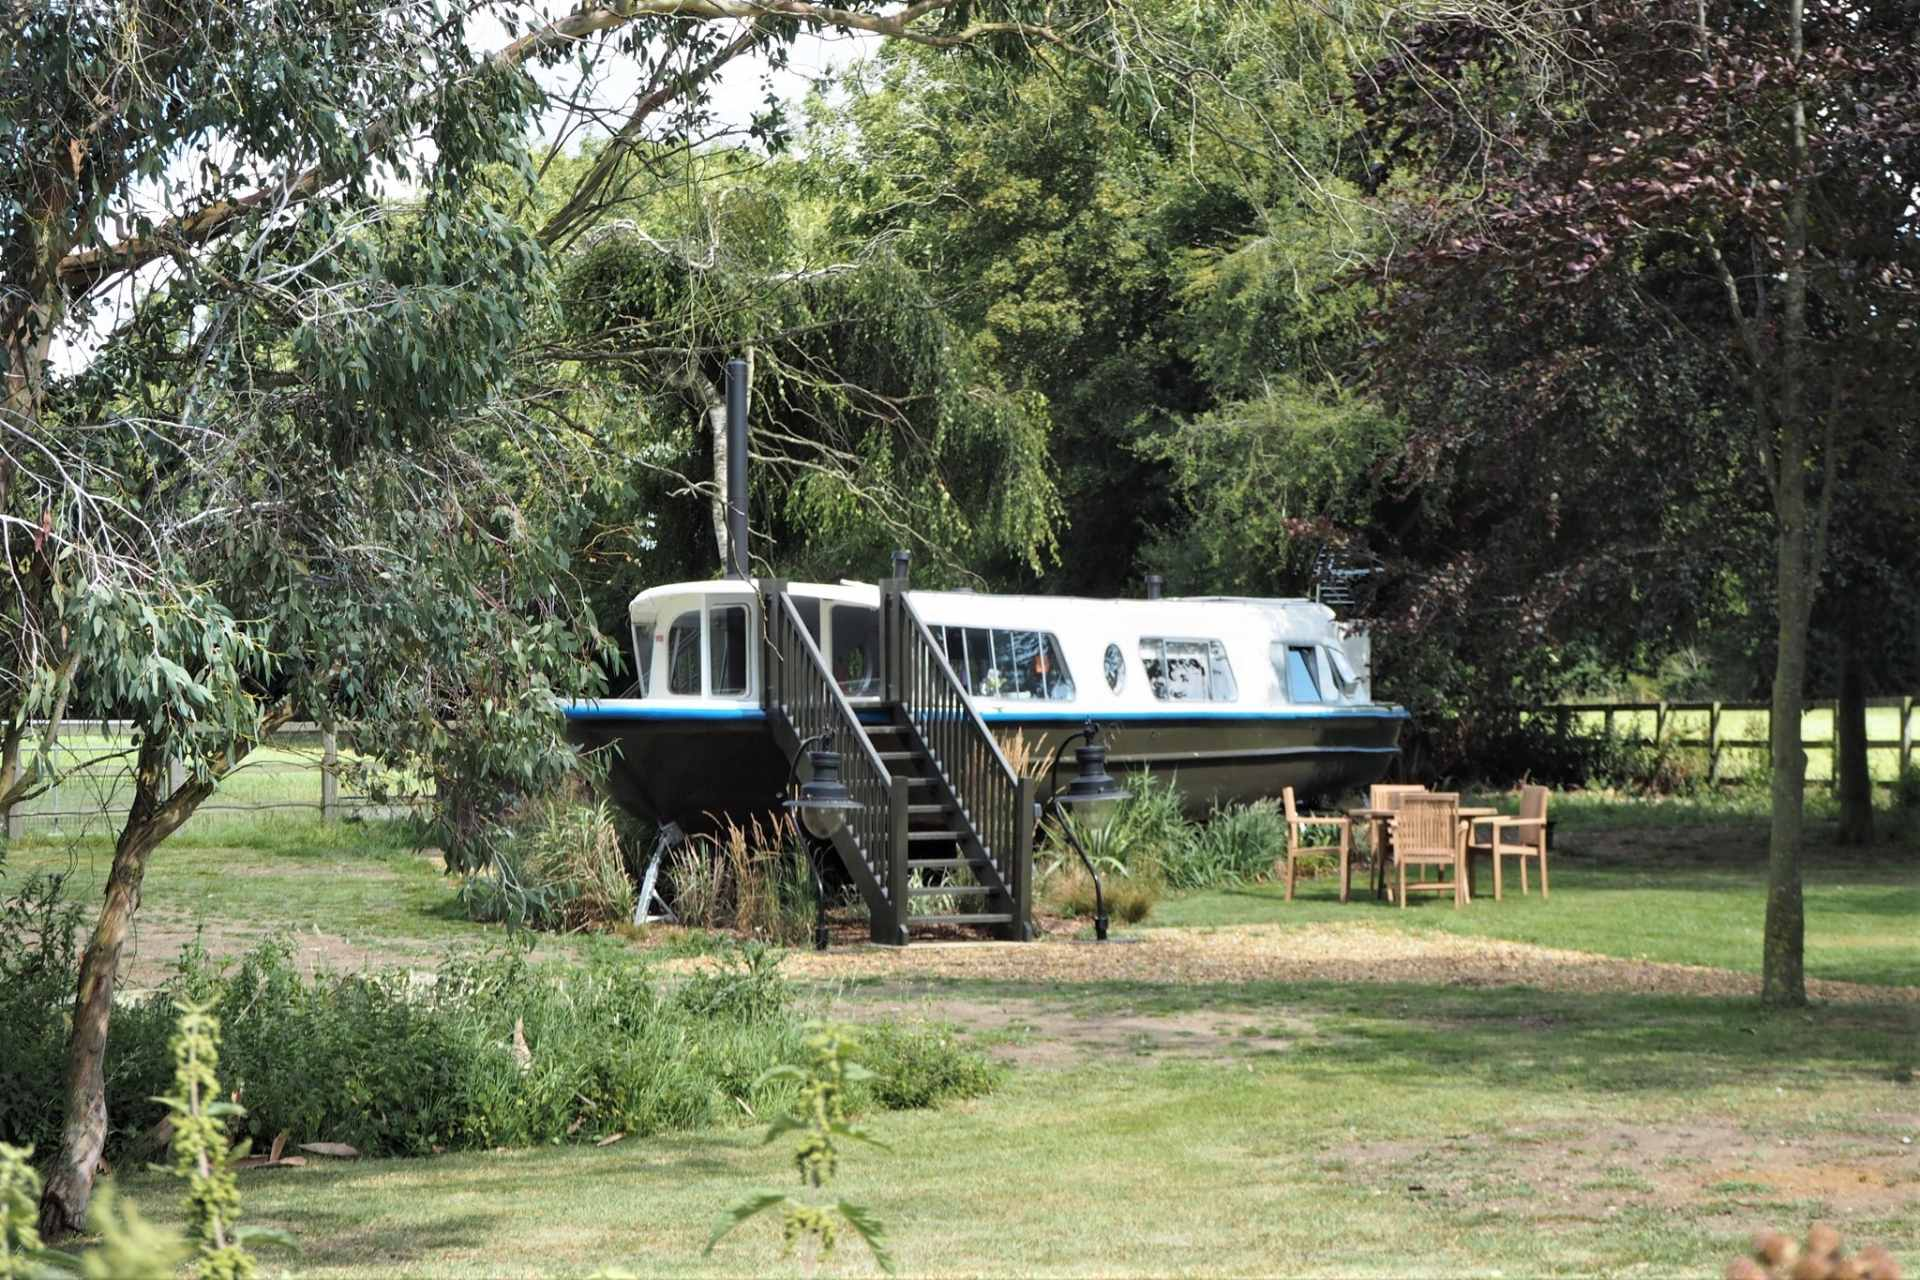 black-white-and-blue-woodland-boat-in-field-in-hingham